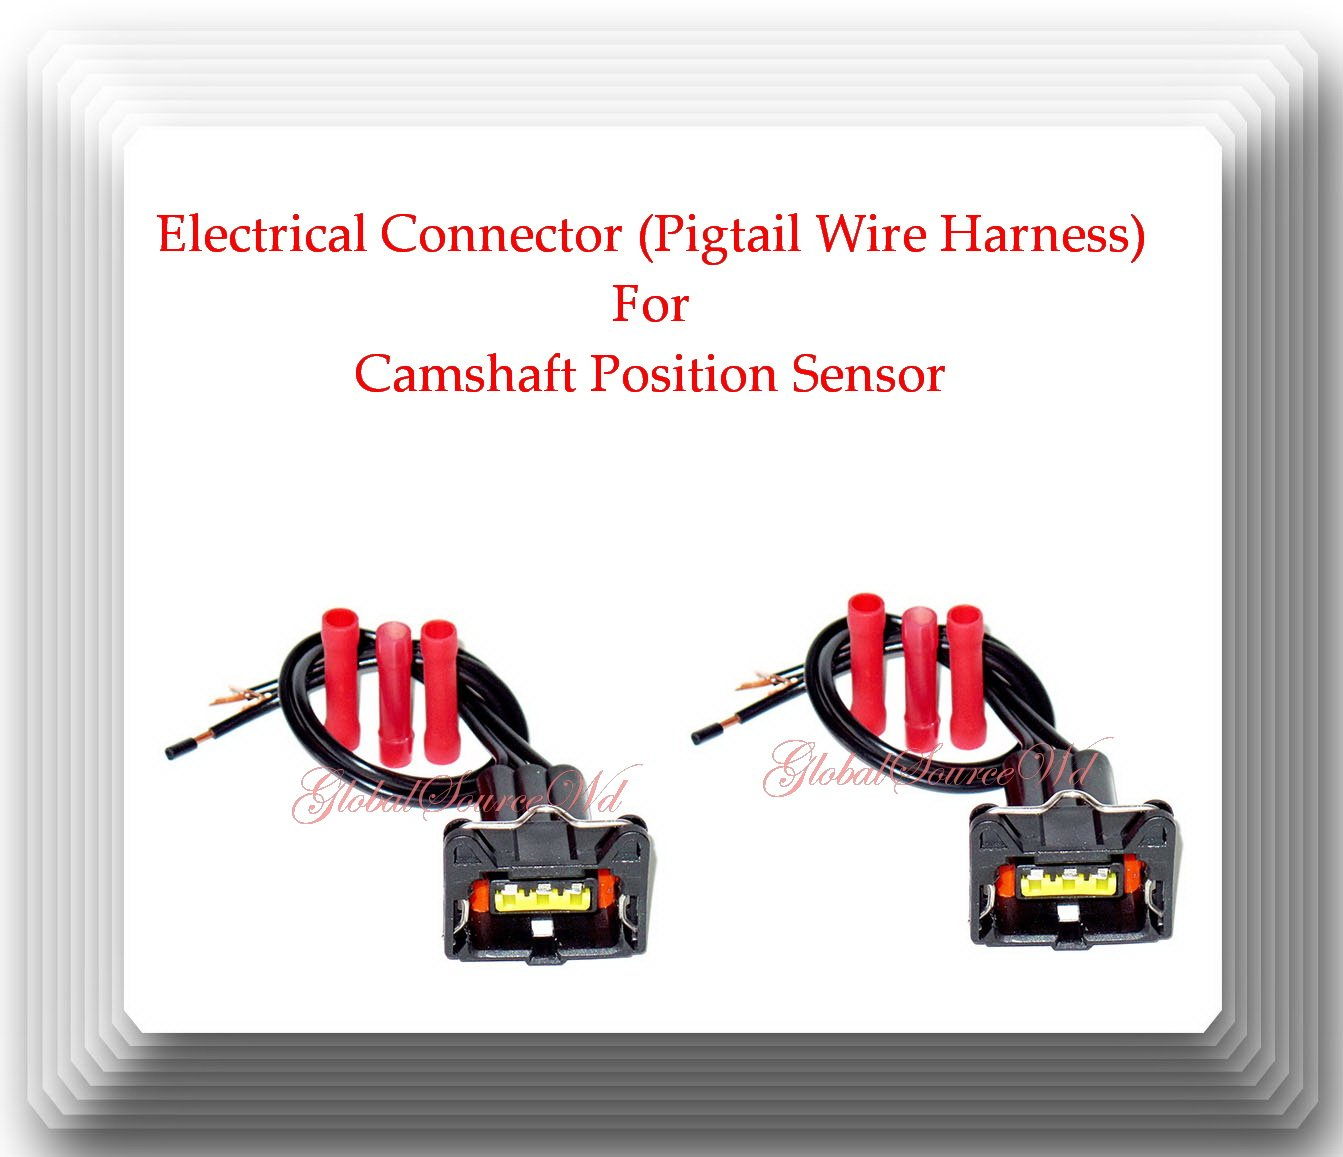 2 Pieces Electrical Connector Of Camshaft Position Sensor Wiring Harness Pc661 Fits Kia Forte Koup 2014 Soul 2010 2016 Spectra 2004 009